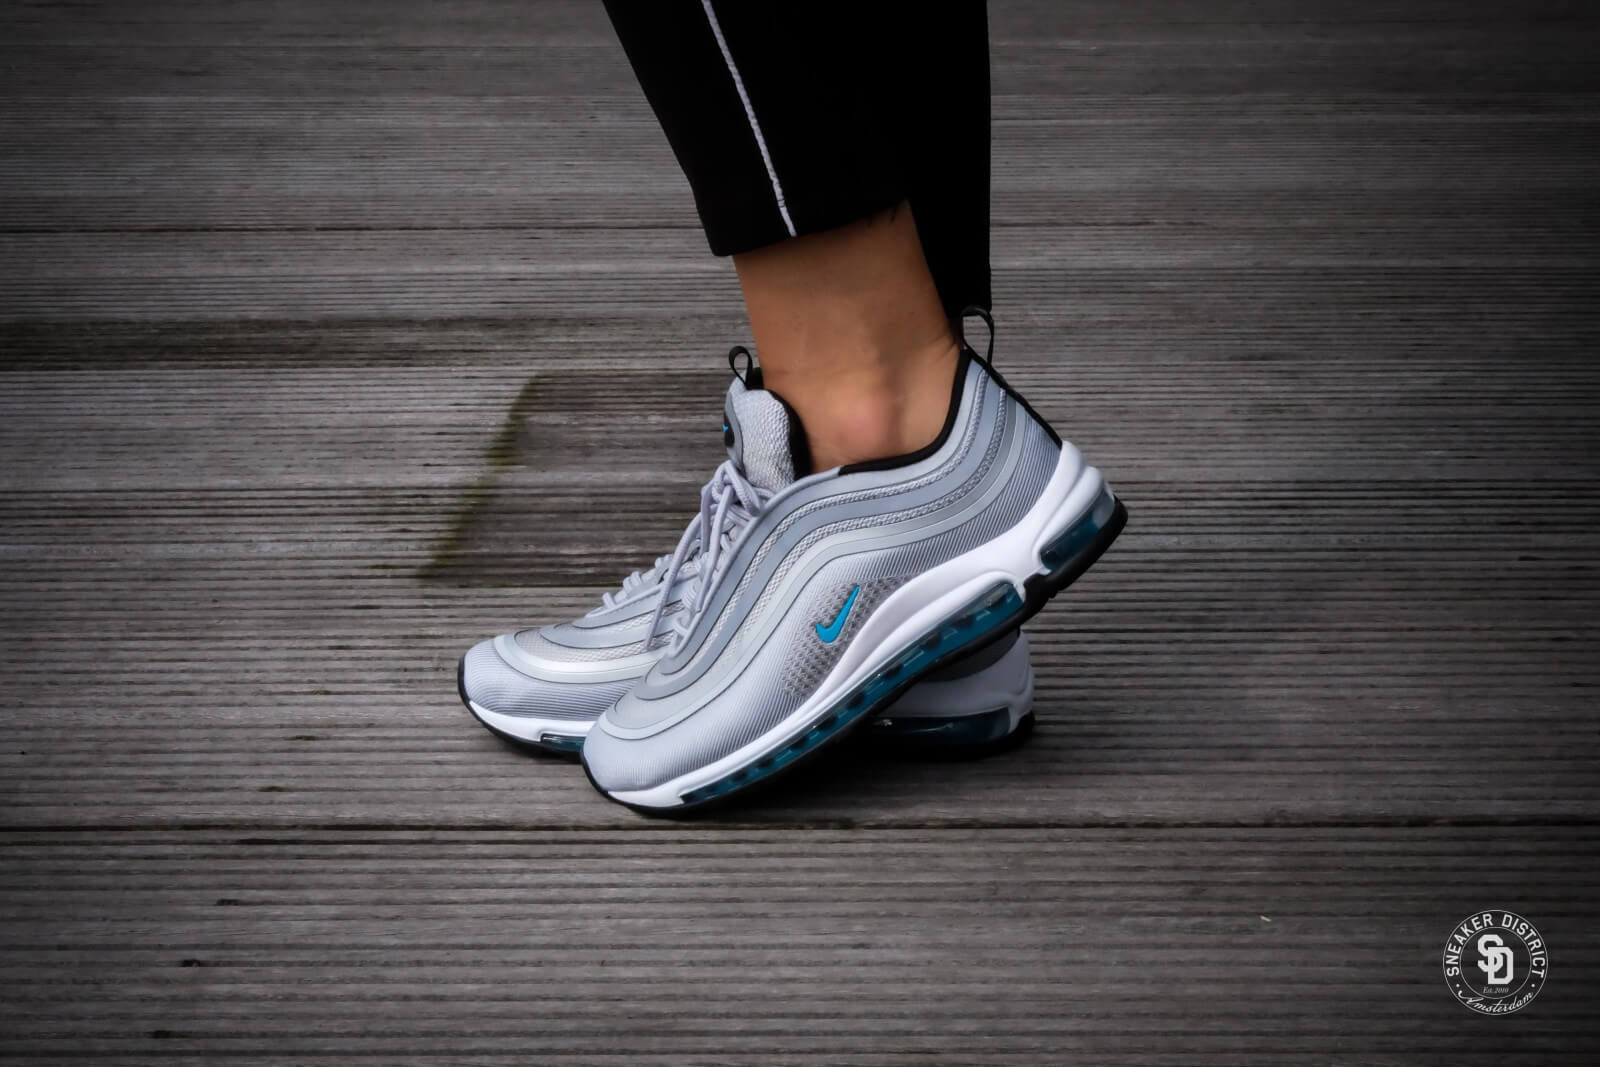 air max 97 wolf grey marina blue